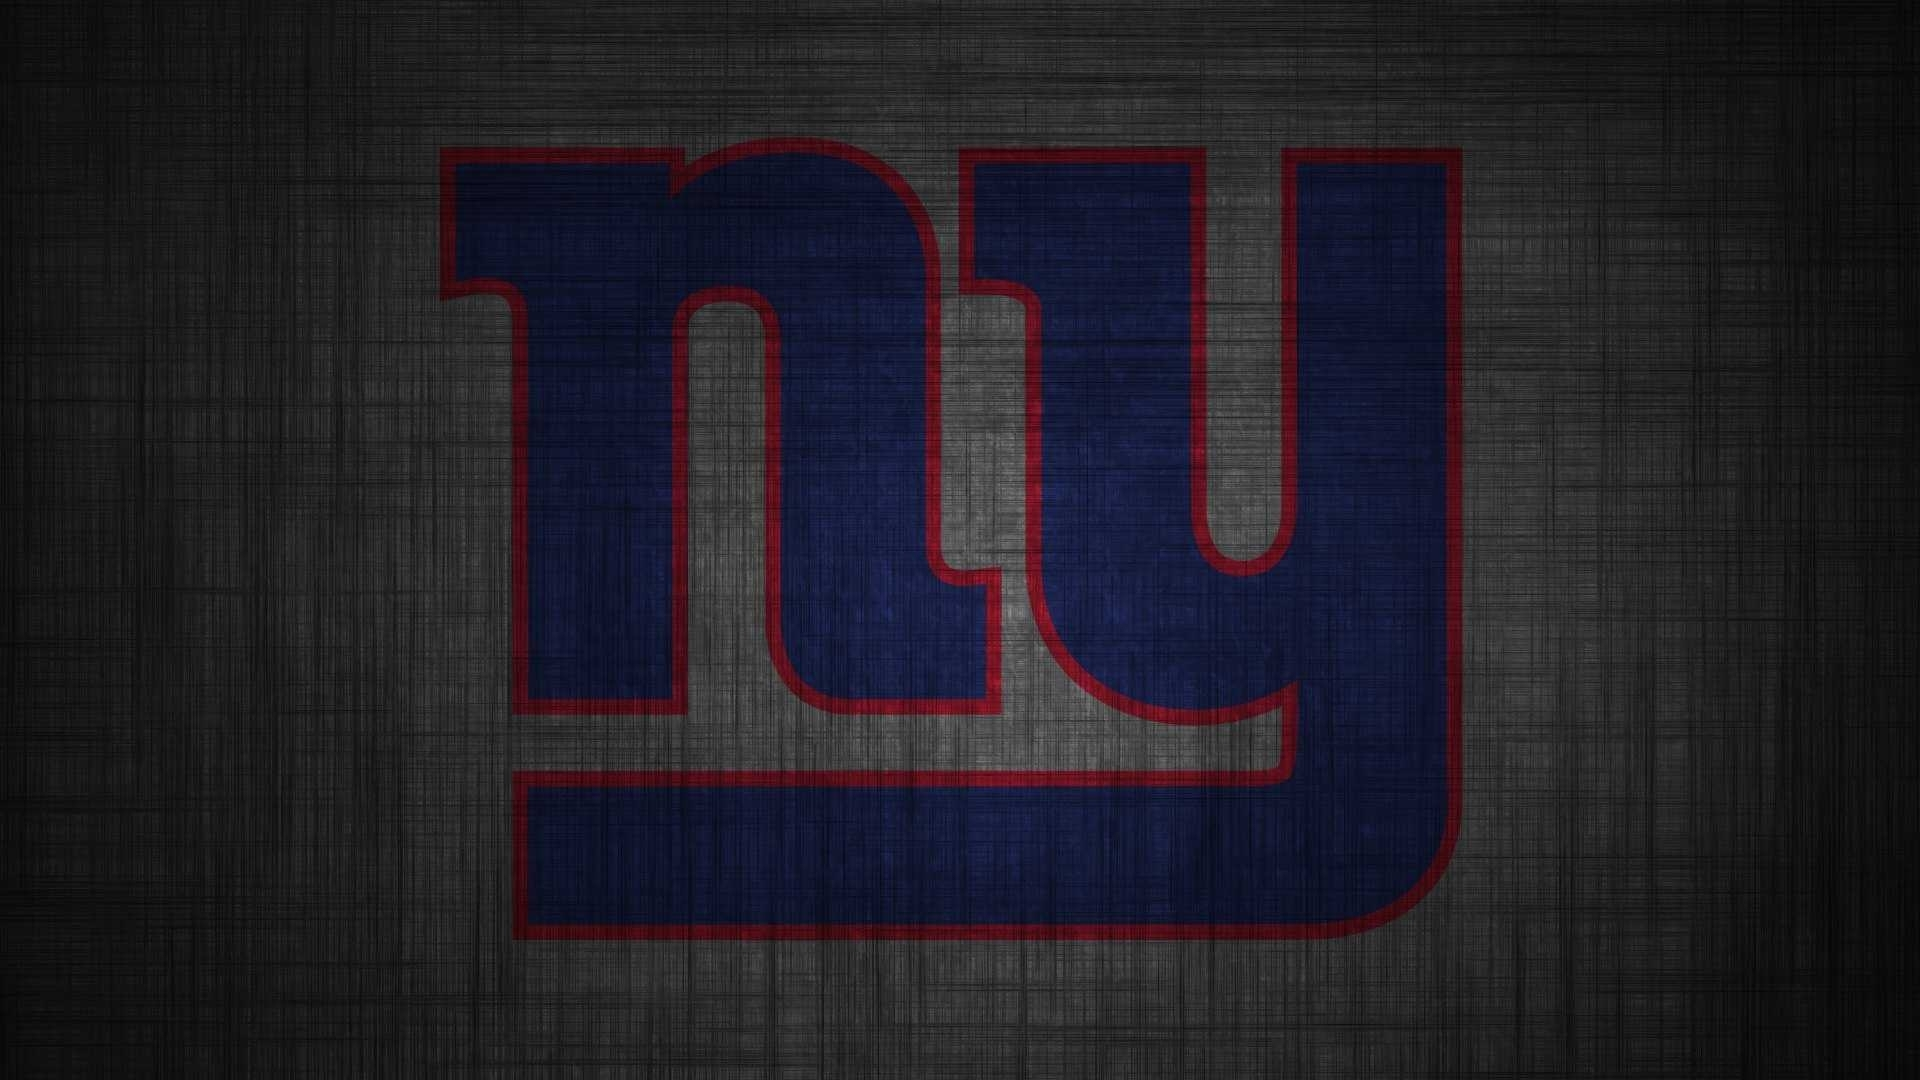 10 Most Popular New York Giants Wallpaper Hd FULL HD 1920×1080 For PC Desktop